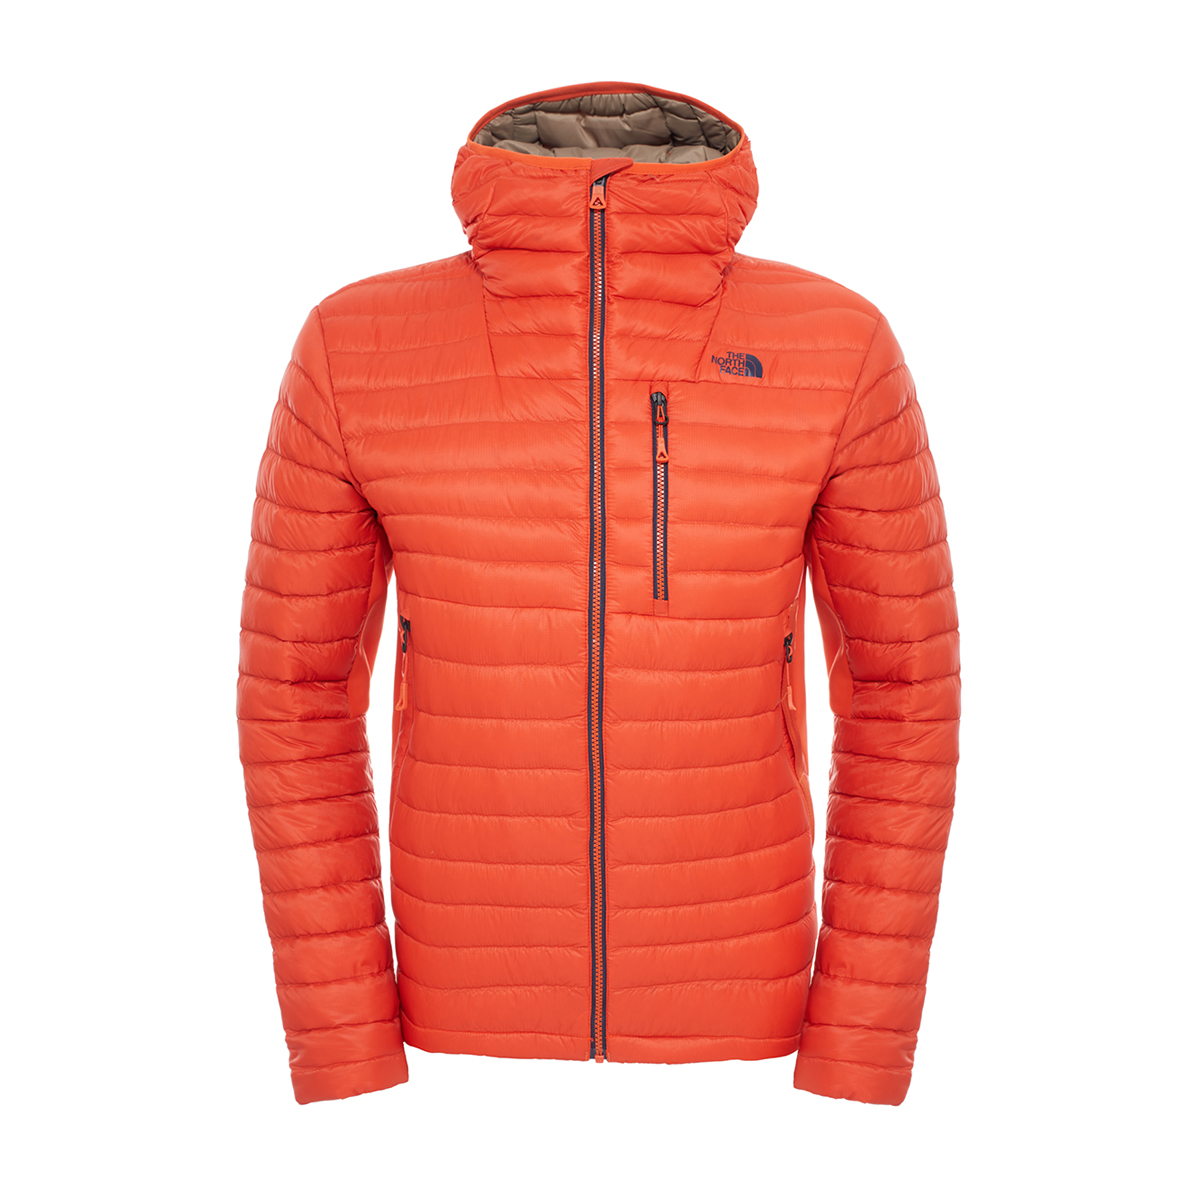 North face clothing outlet store